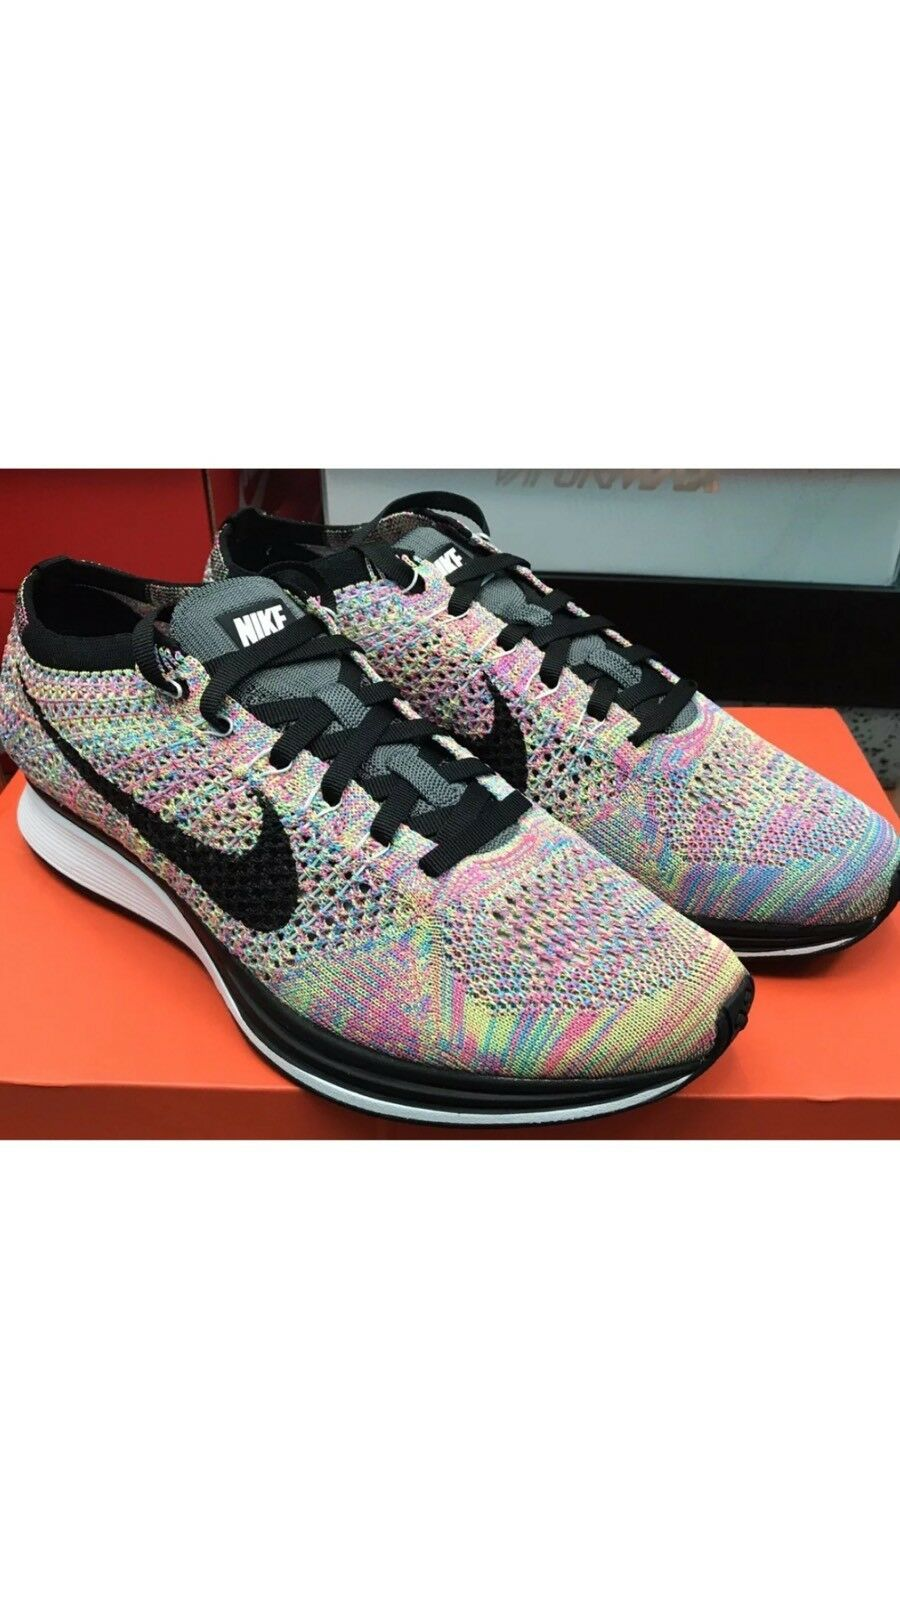 DS Nike Flyknit Racer MULTICOLOR Comfortable The latest discount shoes for men and women